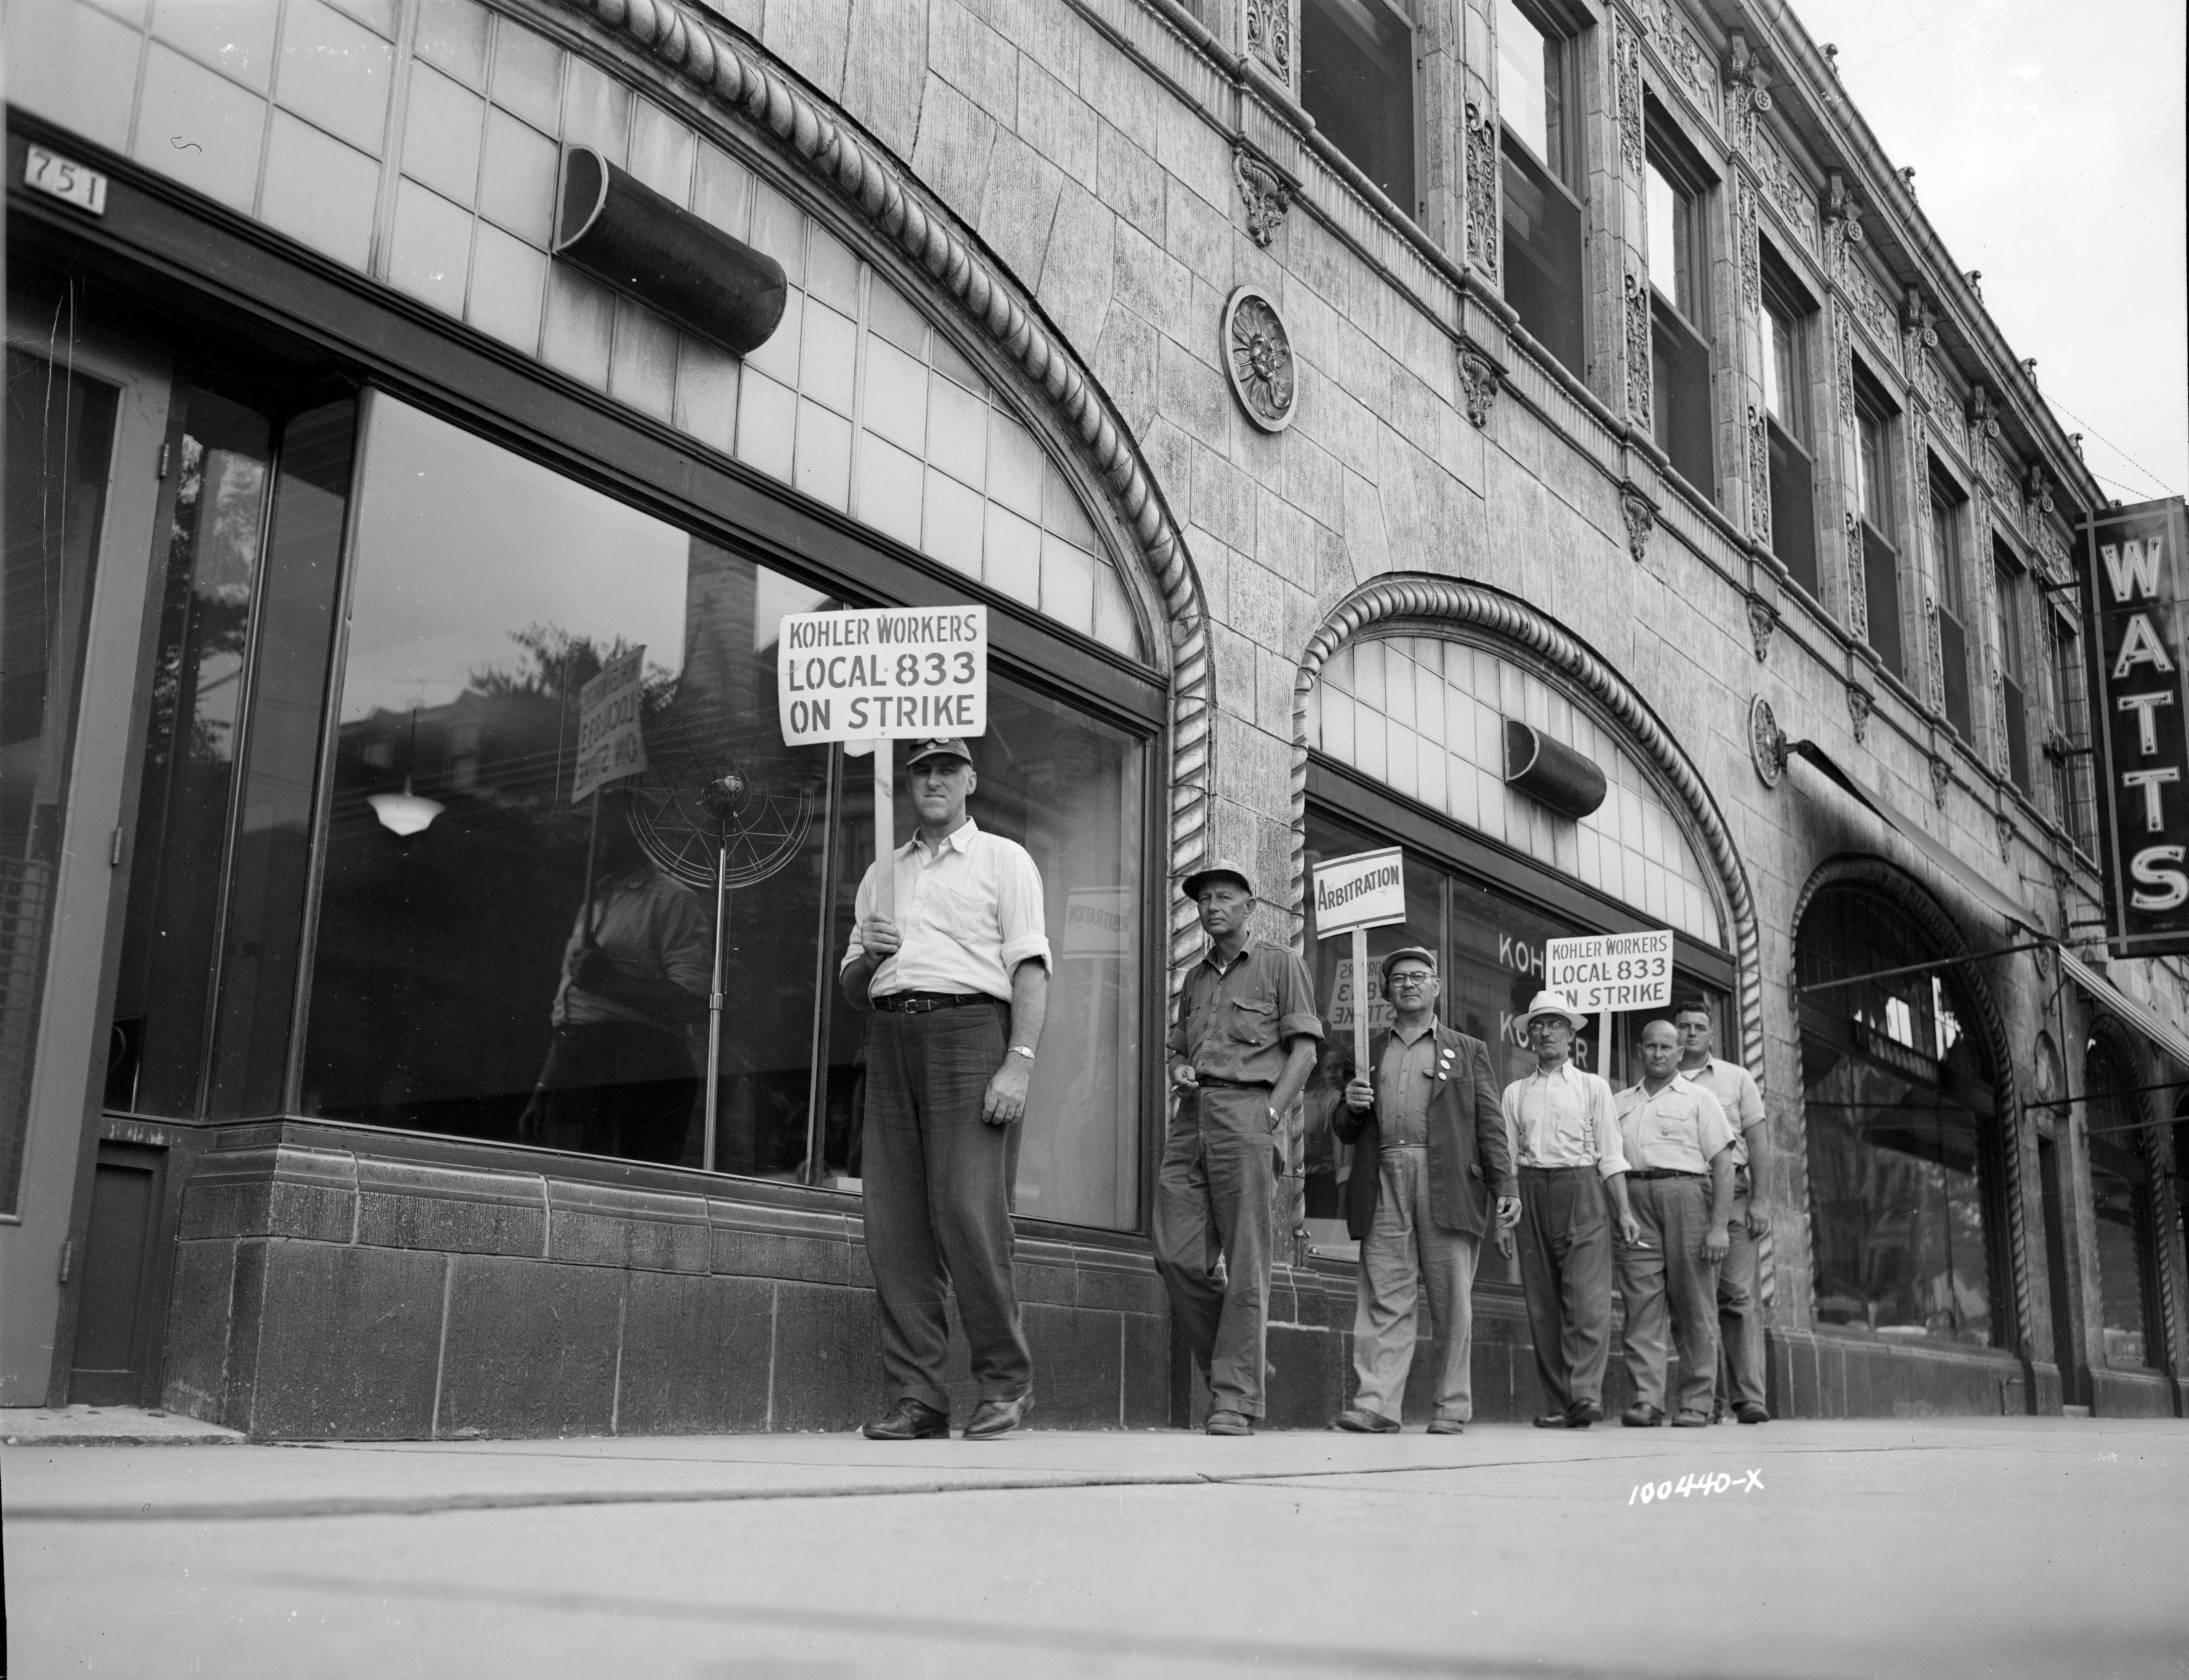 <table class=&quot;lightbox&quot;><tr><td colspan=2 class=&quot;lightbox-title&quot;>Kohler Workers on Strike</td></tr><tr><td colspan=2 class=&quot;lightbox-caption&quot;>A group of Kohler workers from Sheboygan County picket in front of the Watts Tea Shop on Jefferson Street in 1954.</td></tr><tr><td colspan=2 class=&quot;lightbox-spacer&quot;></td></tr><tr class=&quot;lightbox-detail&quot;><td class=&quot;cell-title&quot;>Source: </td><td class=&quot;cell-value&quot;>From the James Blair Murdoch Photographs. Archives, University of Wisconsin-Milwaukee Libraries.<br /><a href=&quot;https://collections.lib.uwm.edu/digital/collection/jbmurdoch/id/2255/rec/2343&quot; target=&quot;_blank&quot;>University of Wisconsin-Milwaukee Libraries</a></td></tr><tr class=&quot;filler-row&quot;><td colspan=2>&nbsp;</td></tr></table>